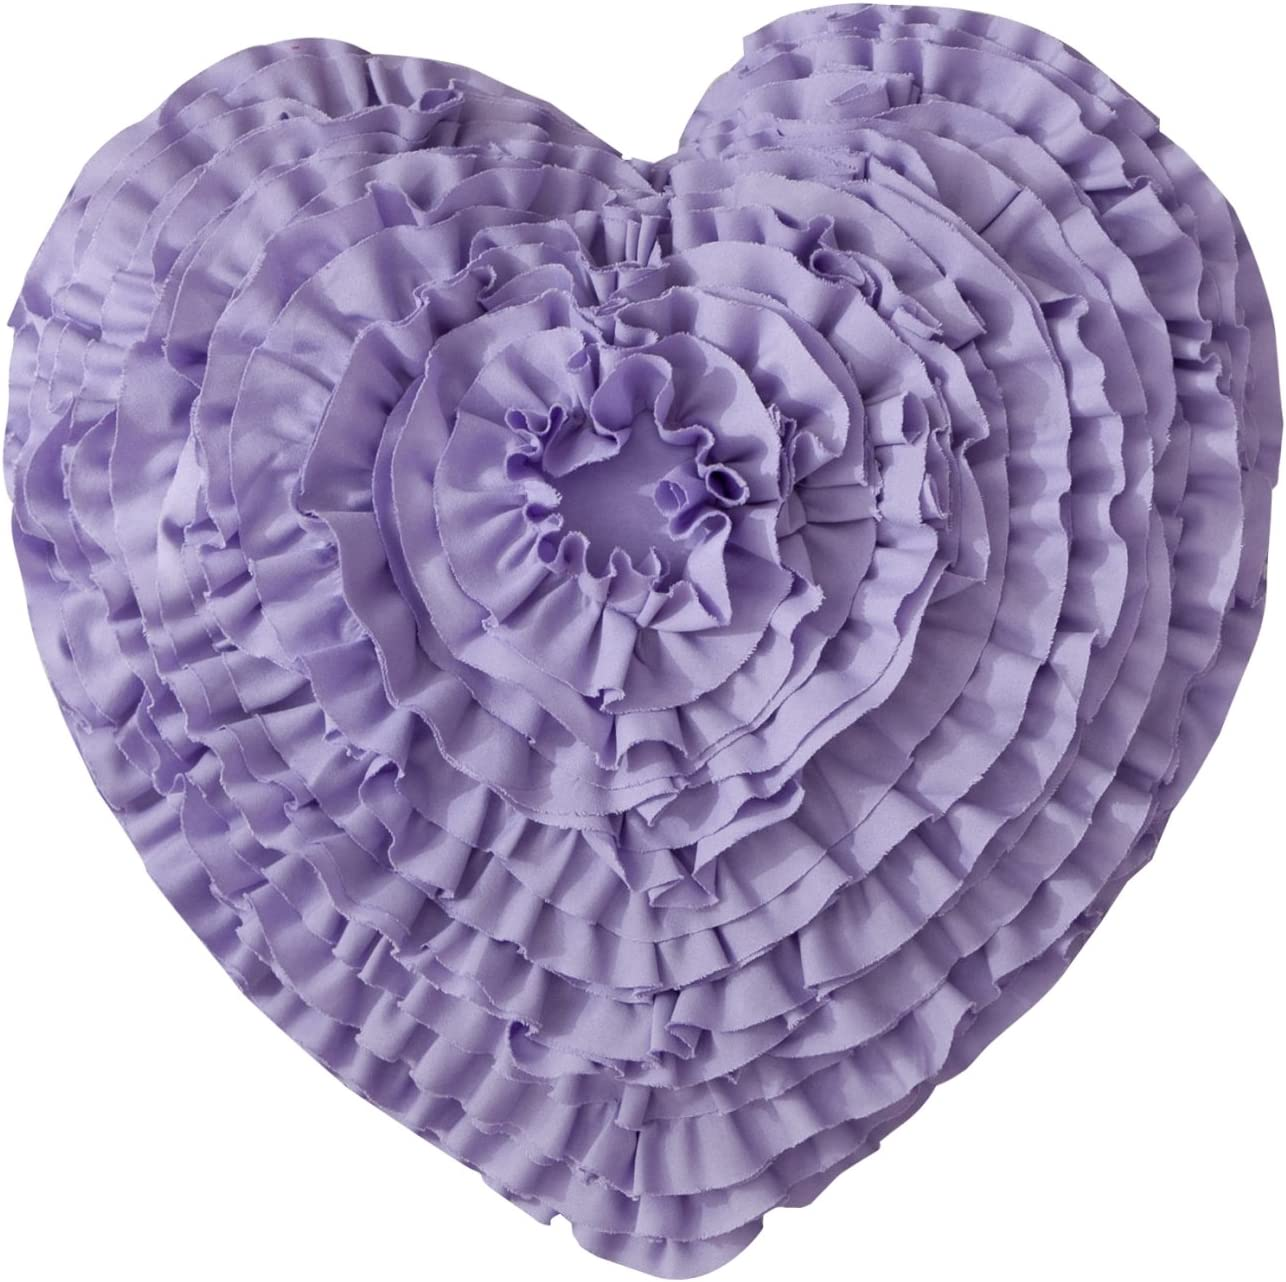 Mother s Day Throw Pillow Hand Crafted Love Heart Shaped Ruffled Floral Decorative Cushion Gifts for Mom 17 17 , Purple